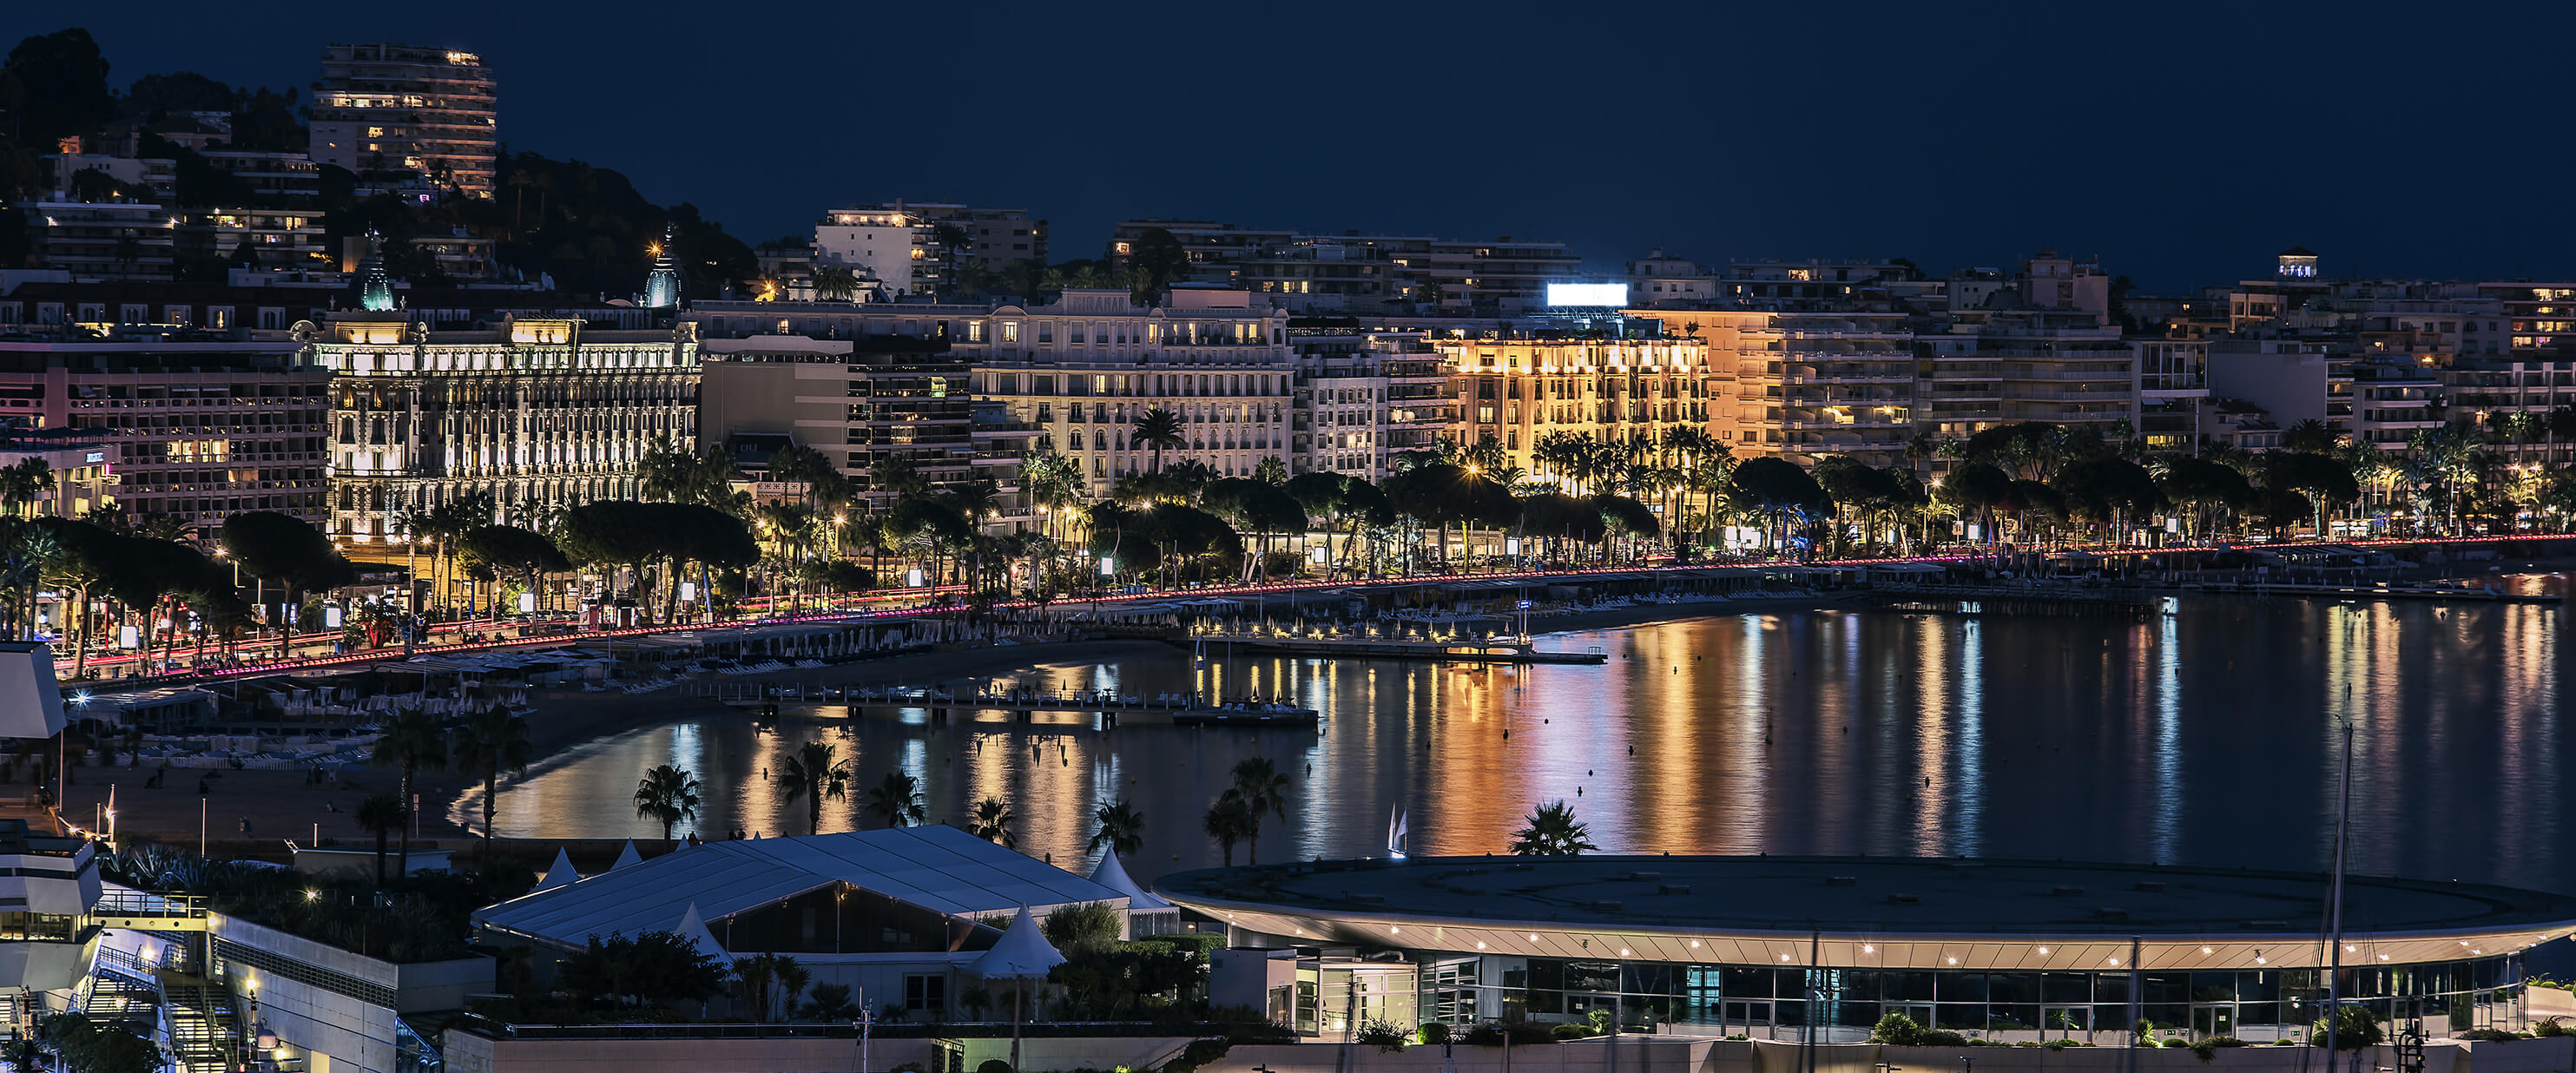 croisette & Bay of cannes